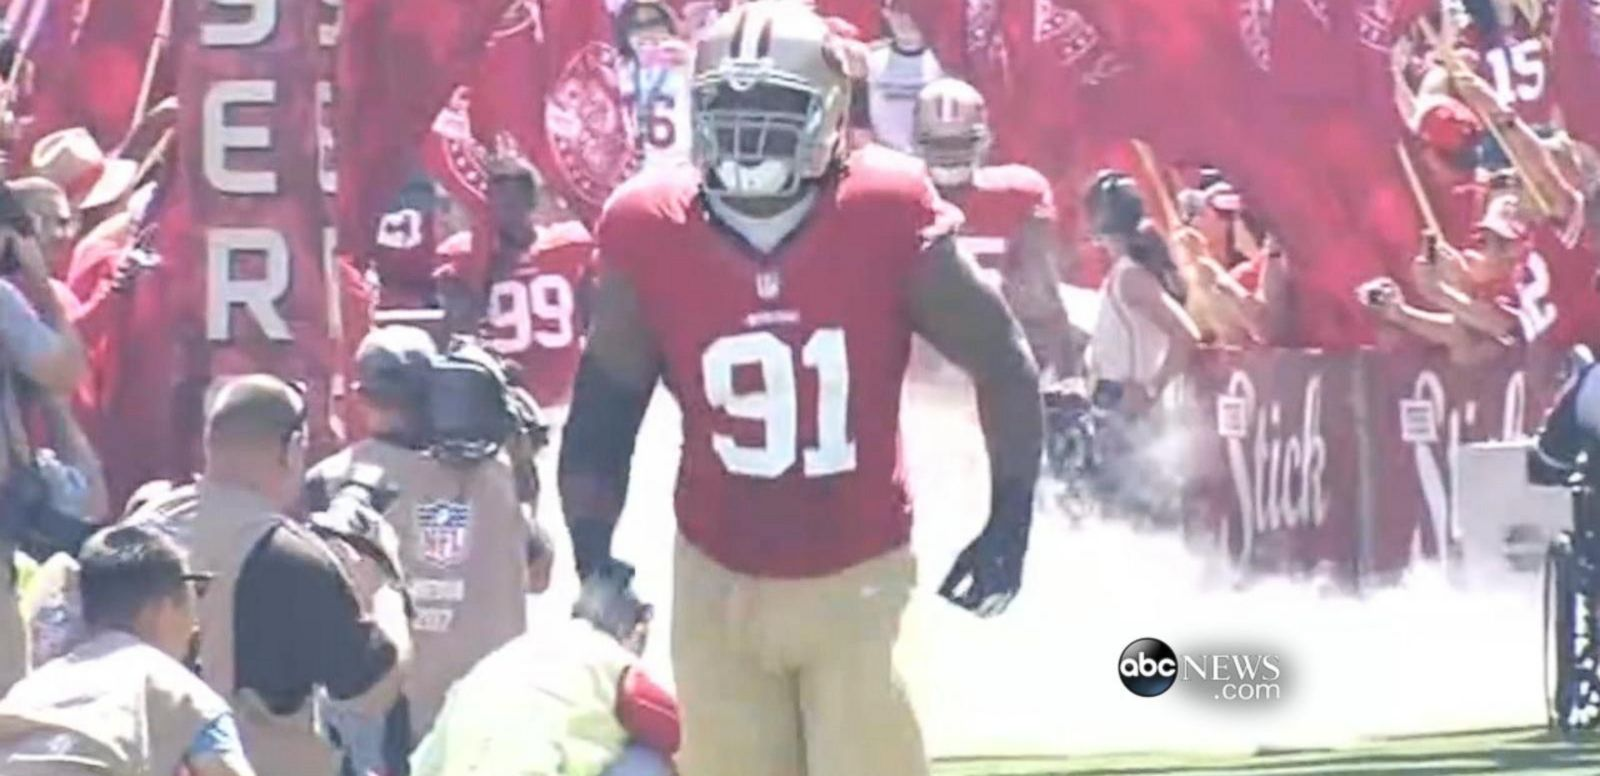 VIDEO: The 49ers' star defensive lineman was removed from team after search warrant issued for possible sexual assault.